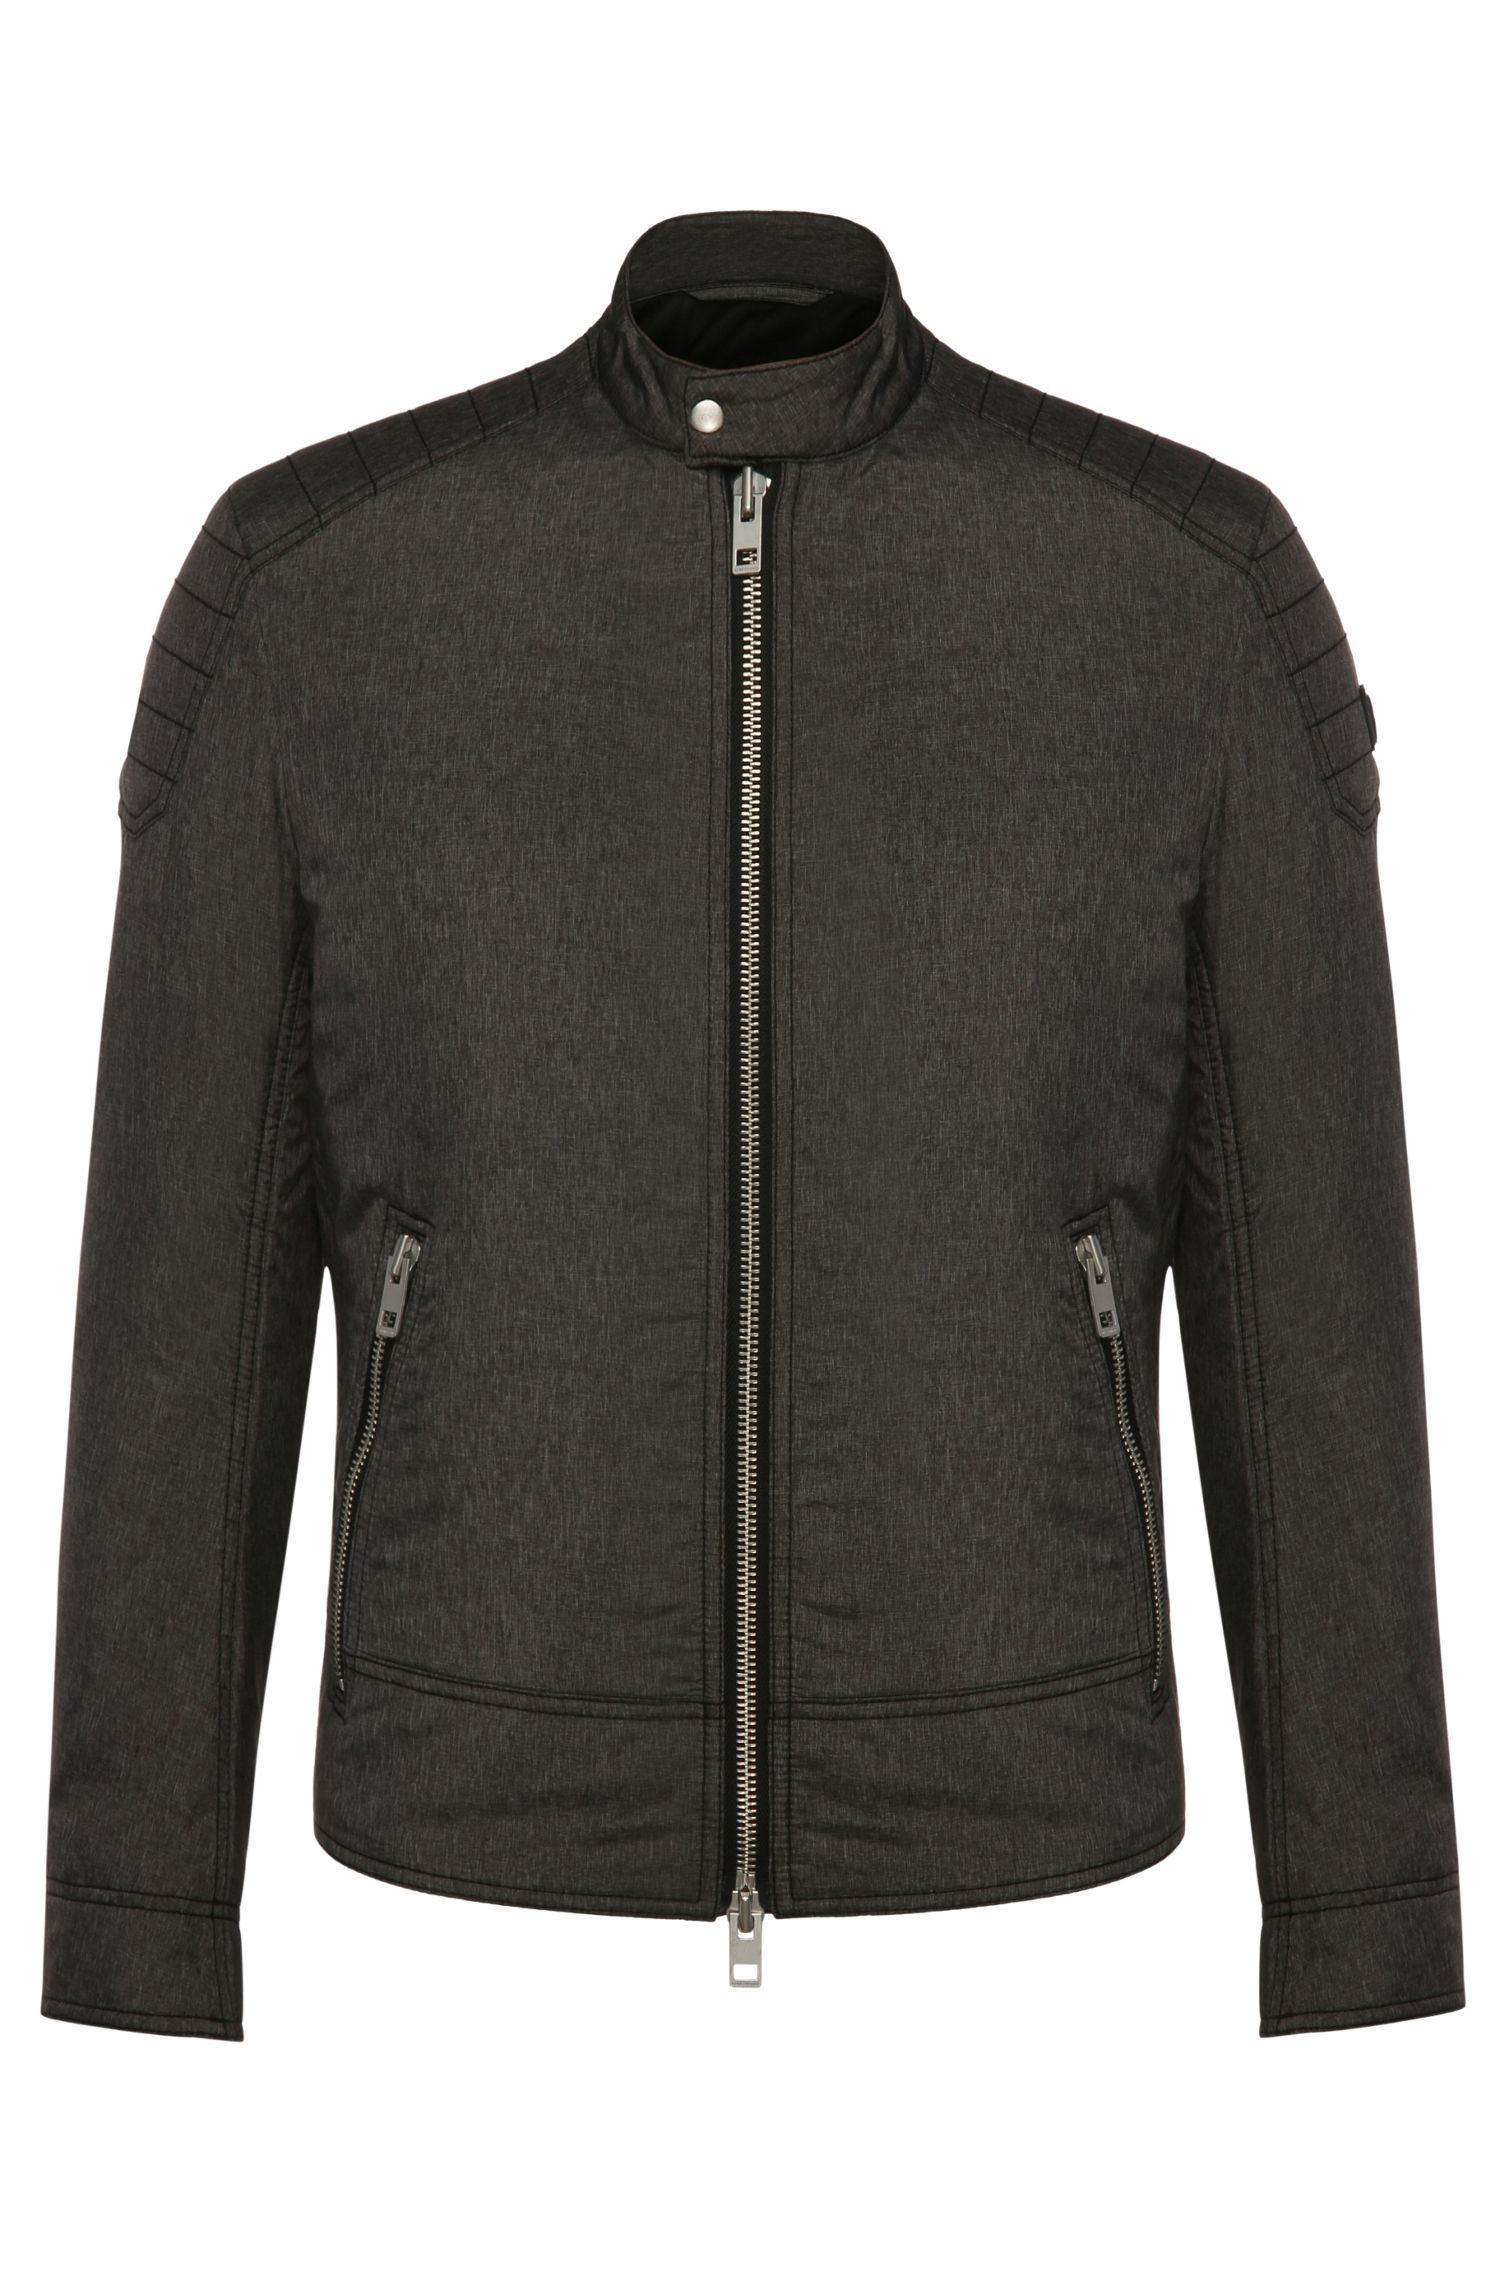 'Oryder' | Nylon Blend Water-Repellent Biker Jacket